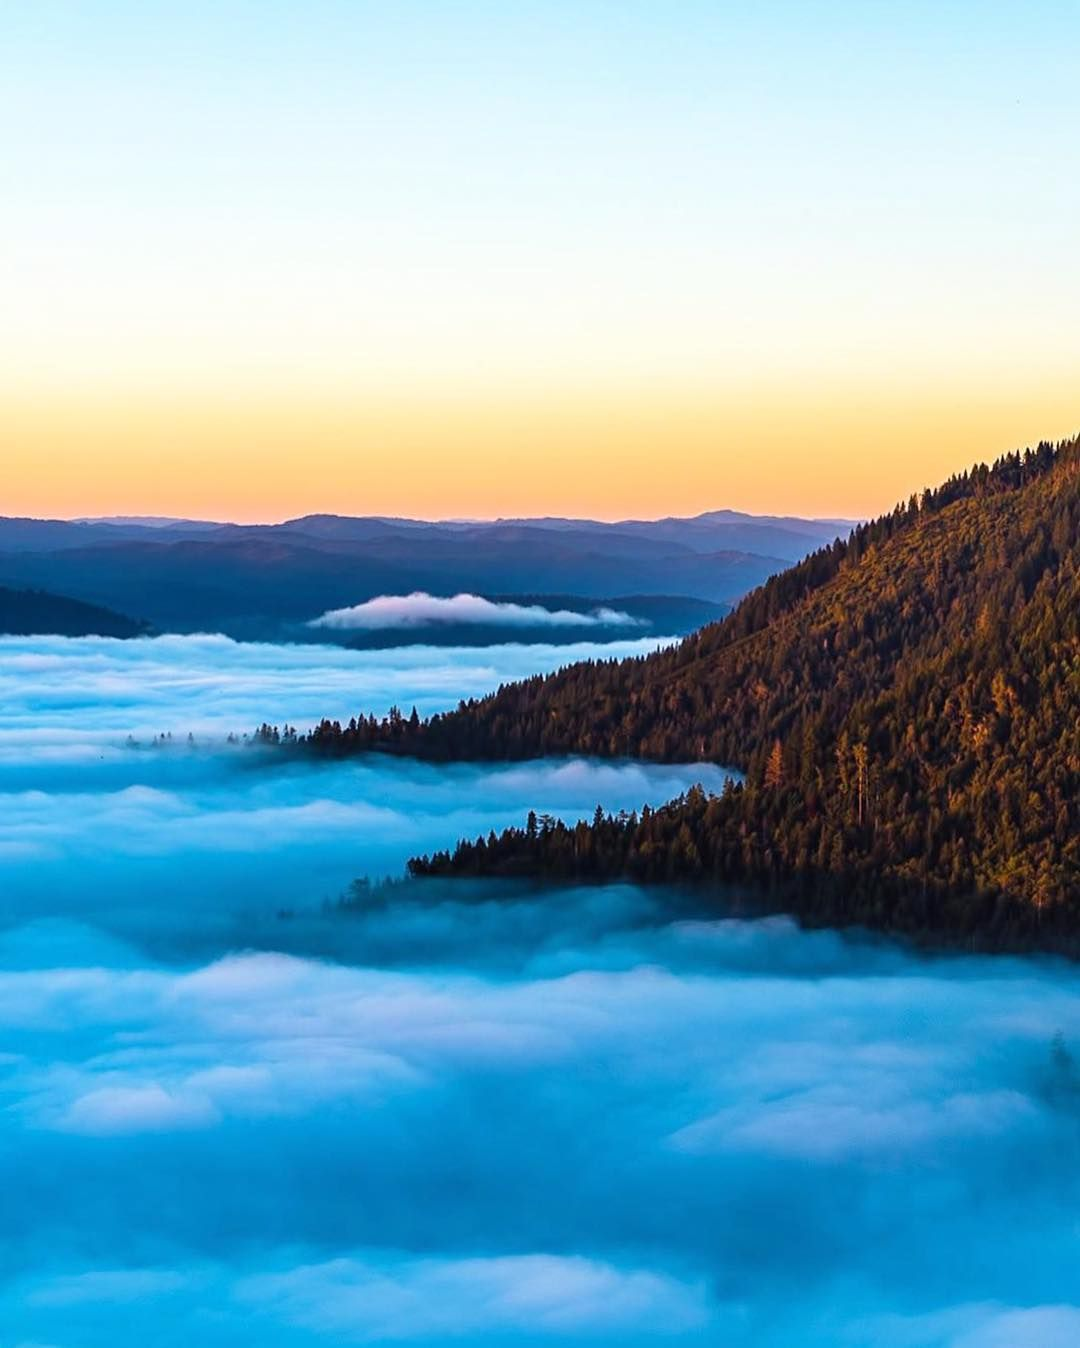 Rising above the clouds ☁️ ☁️ ☁️ in Redwood National Park | Photo by Andy Best (@andy_best on IG) https://t.co/f5s3QSNkSw